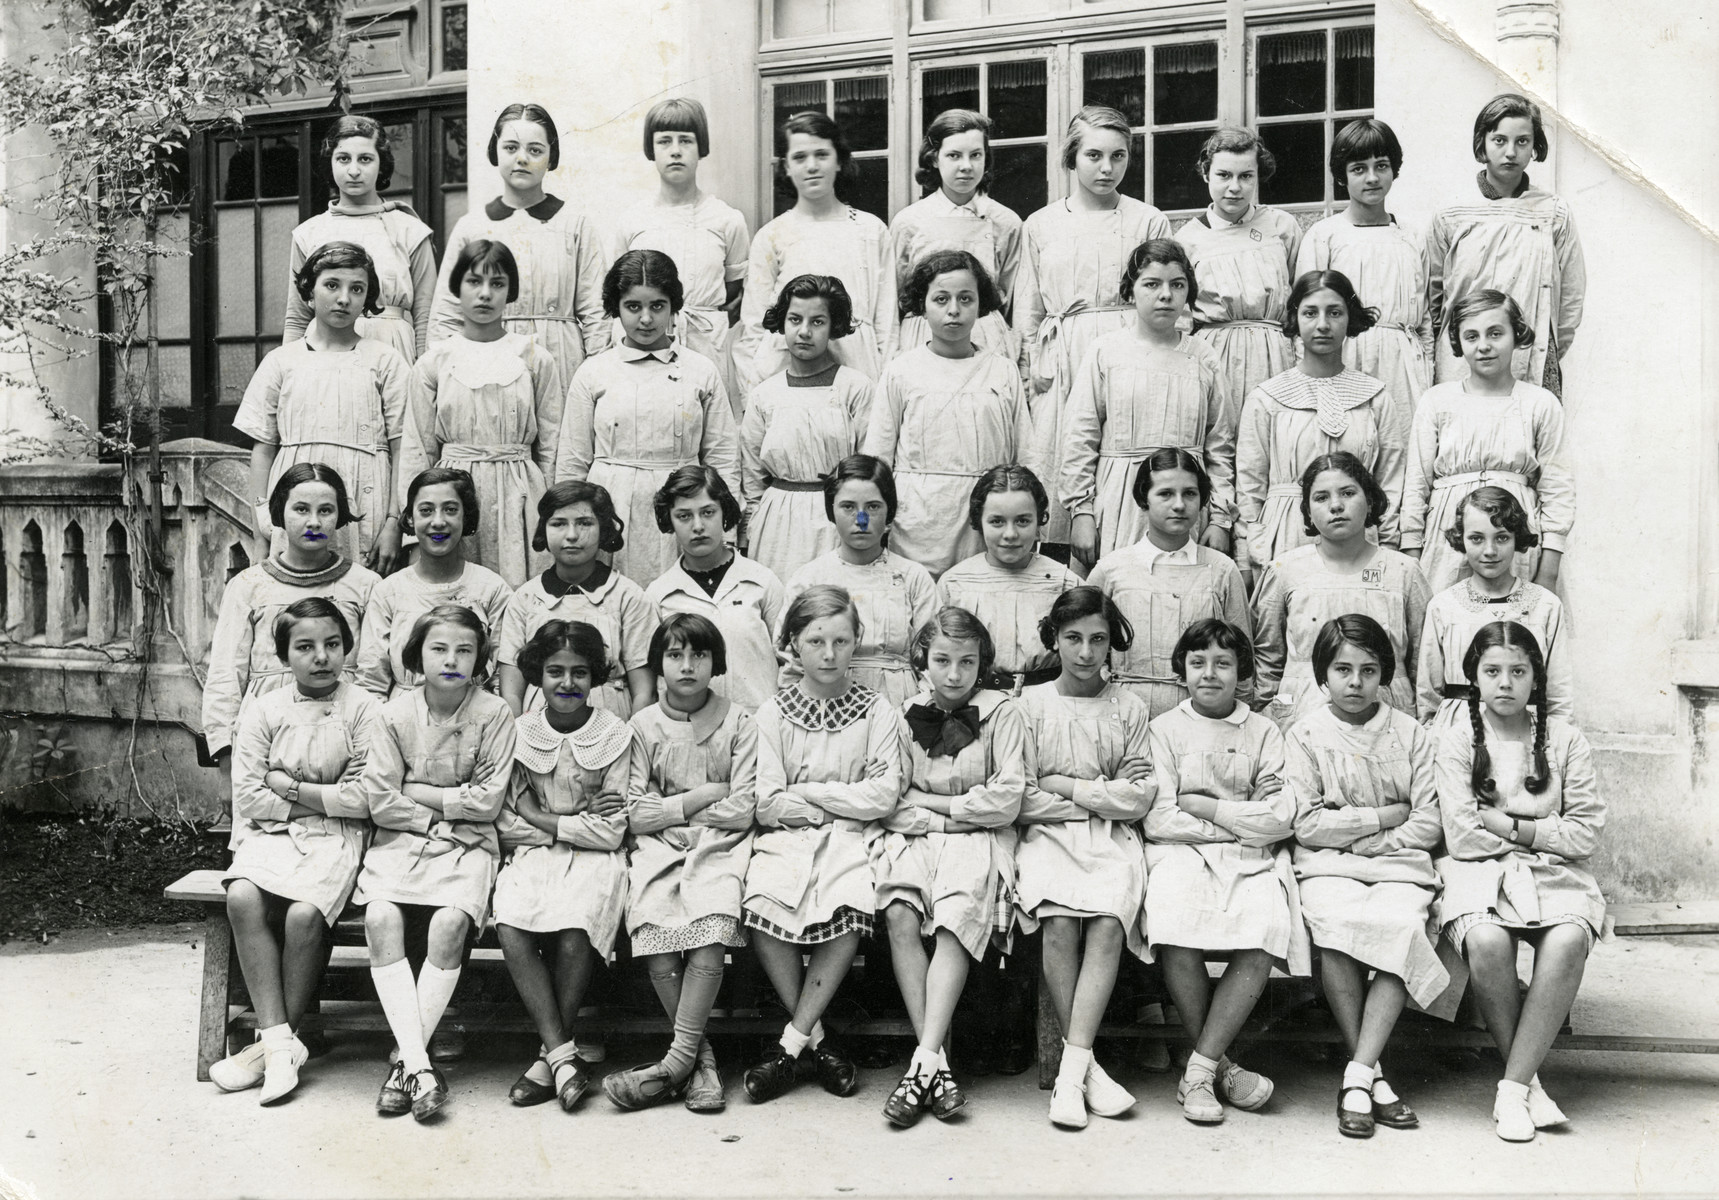 A group of Tunisian schoolgirls wearing aprons. Nadia Cohen is in the first row - 3rd from the left.